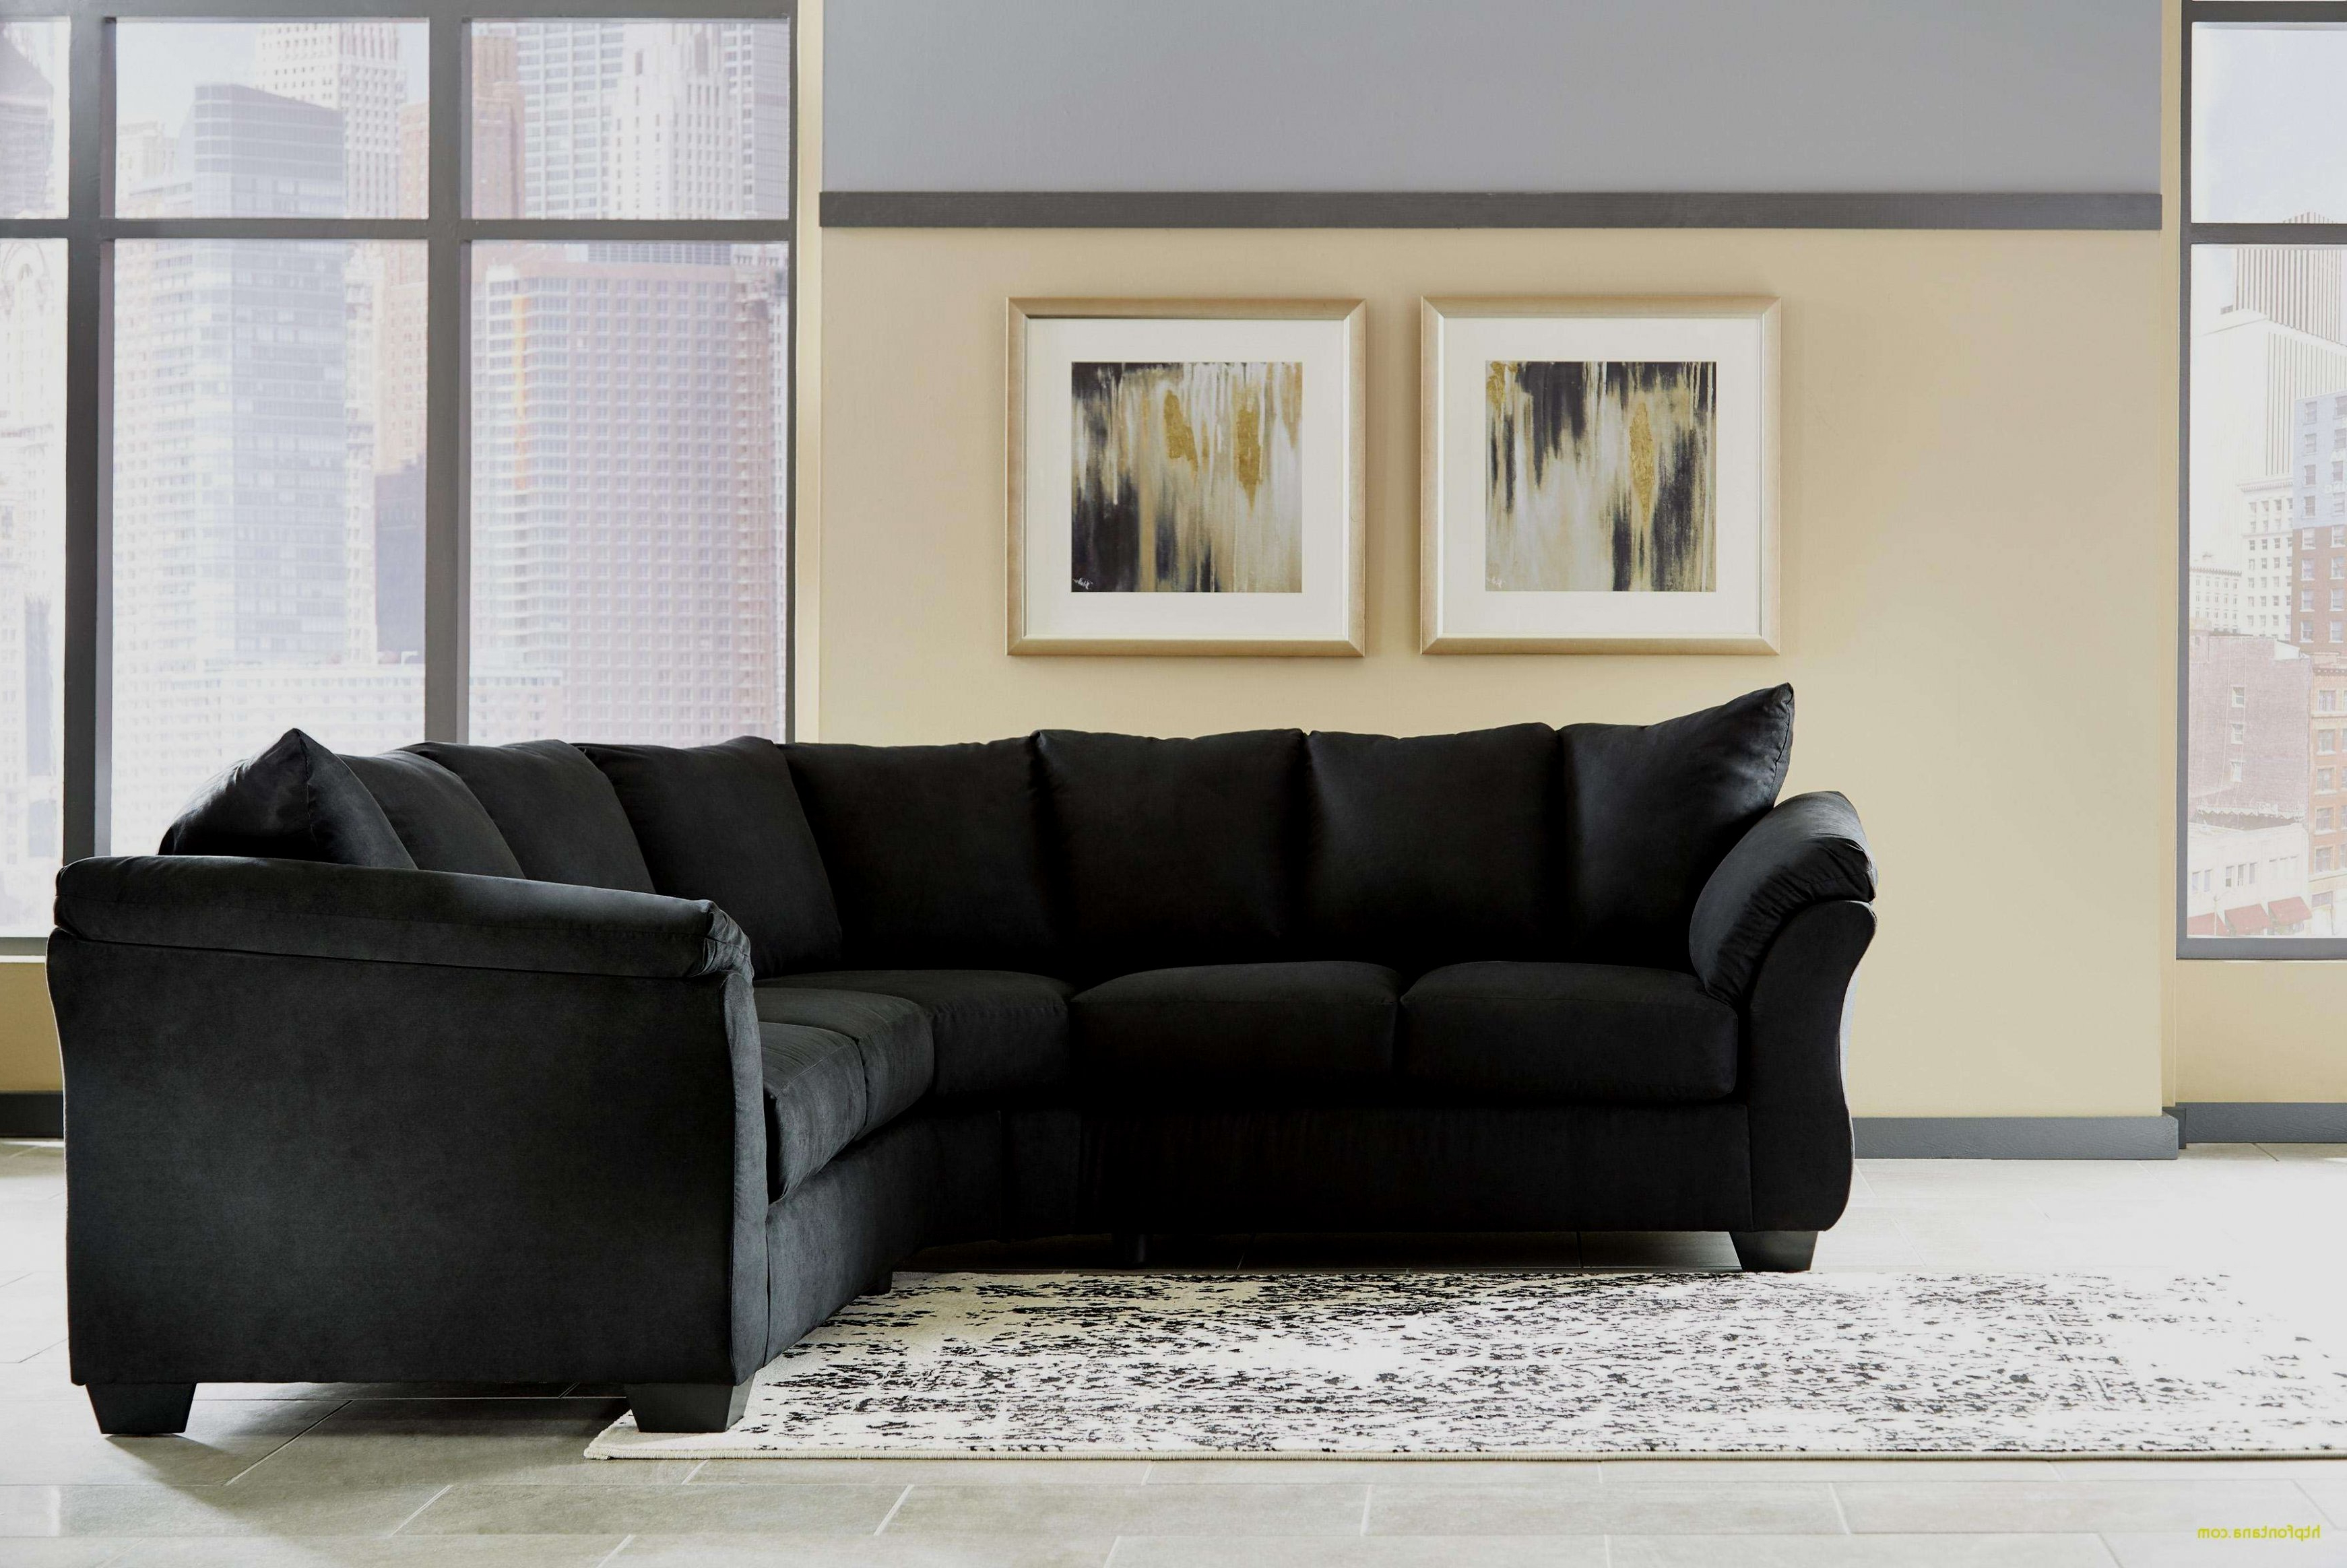 Sofas De Relax 87dx sofas De Relax Grande sofa Kinderzimmer Luxus Couch and sofa Luxury